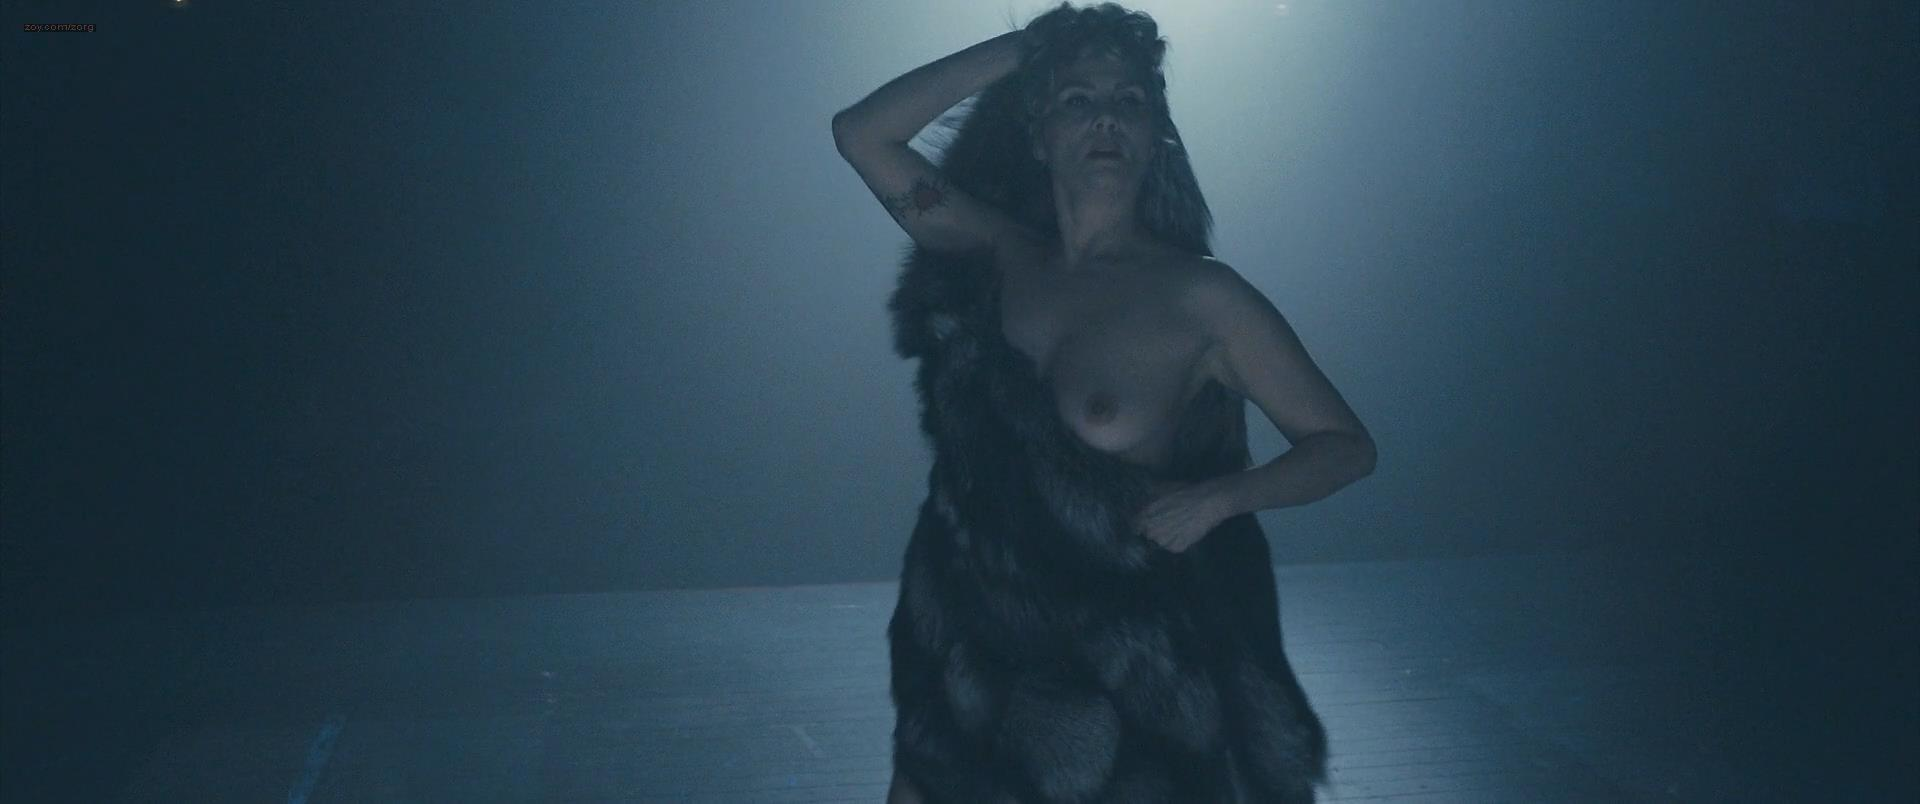 Emmanuelle Seigner hot sexy in lingerie and briefly nude topless in Polanski's Venus in Fur (2013) hd1080p